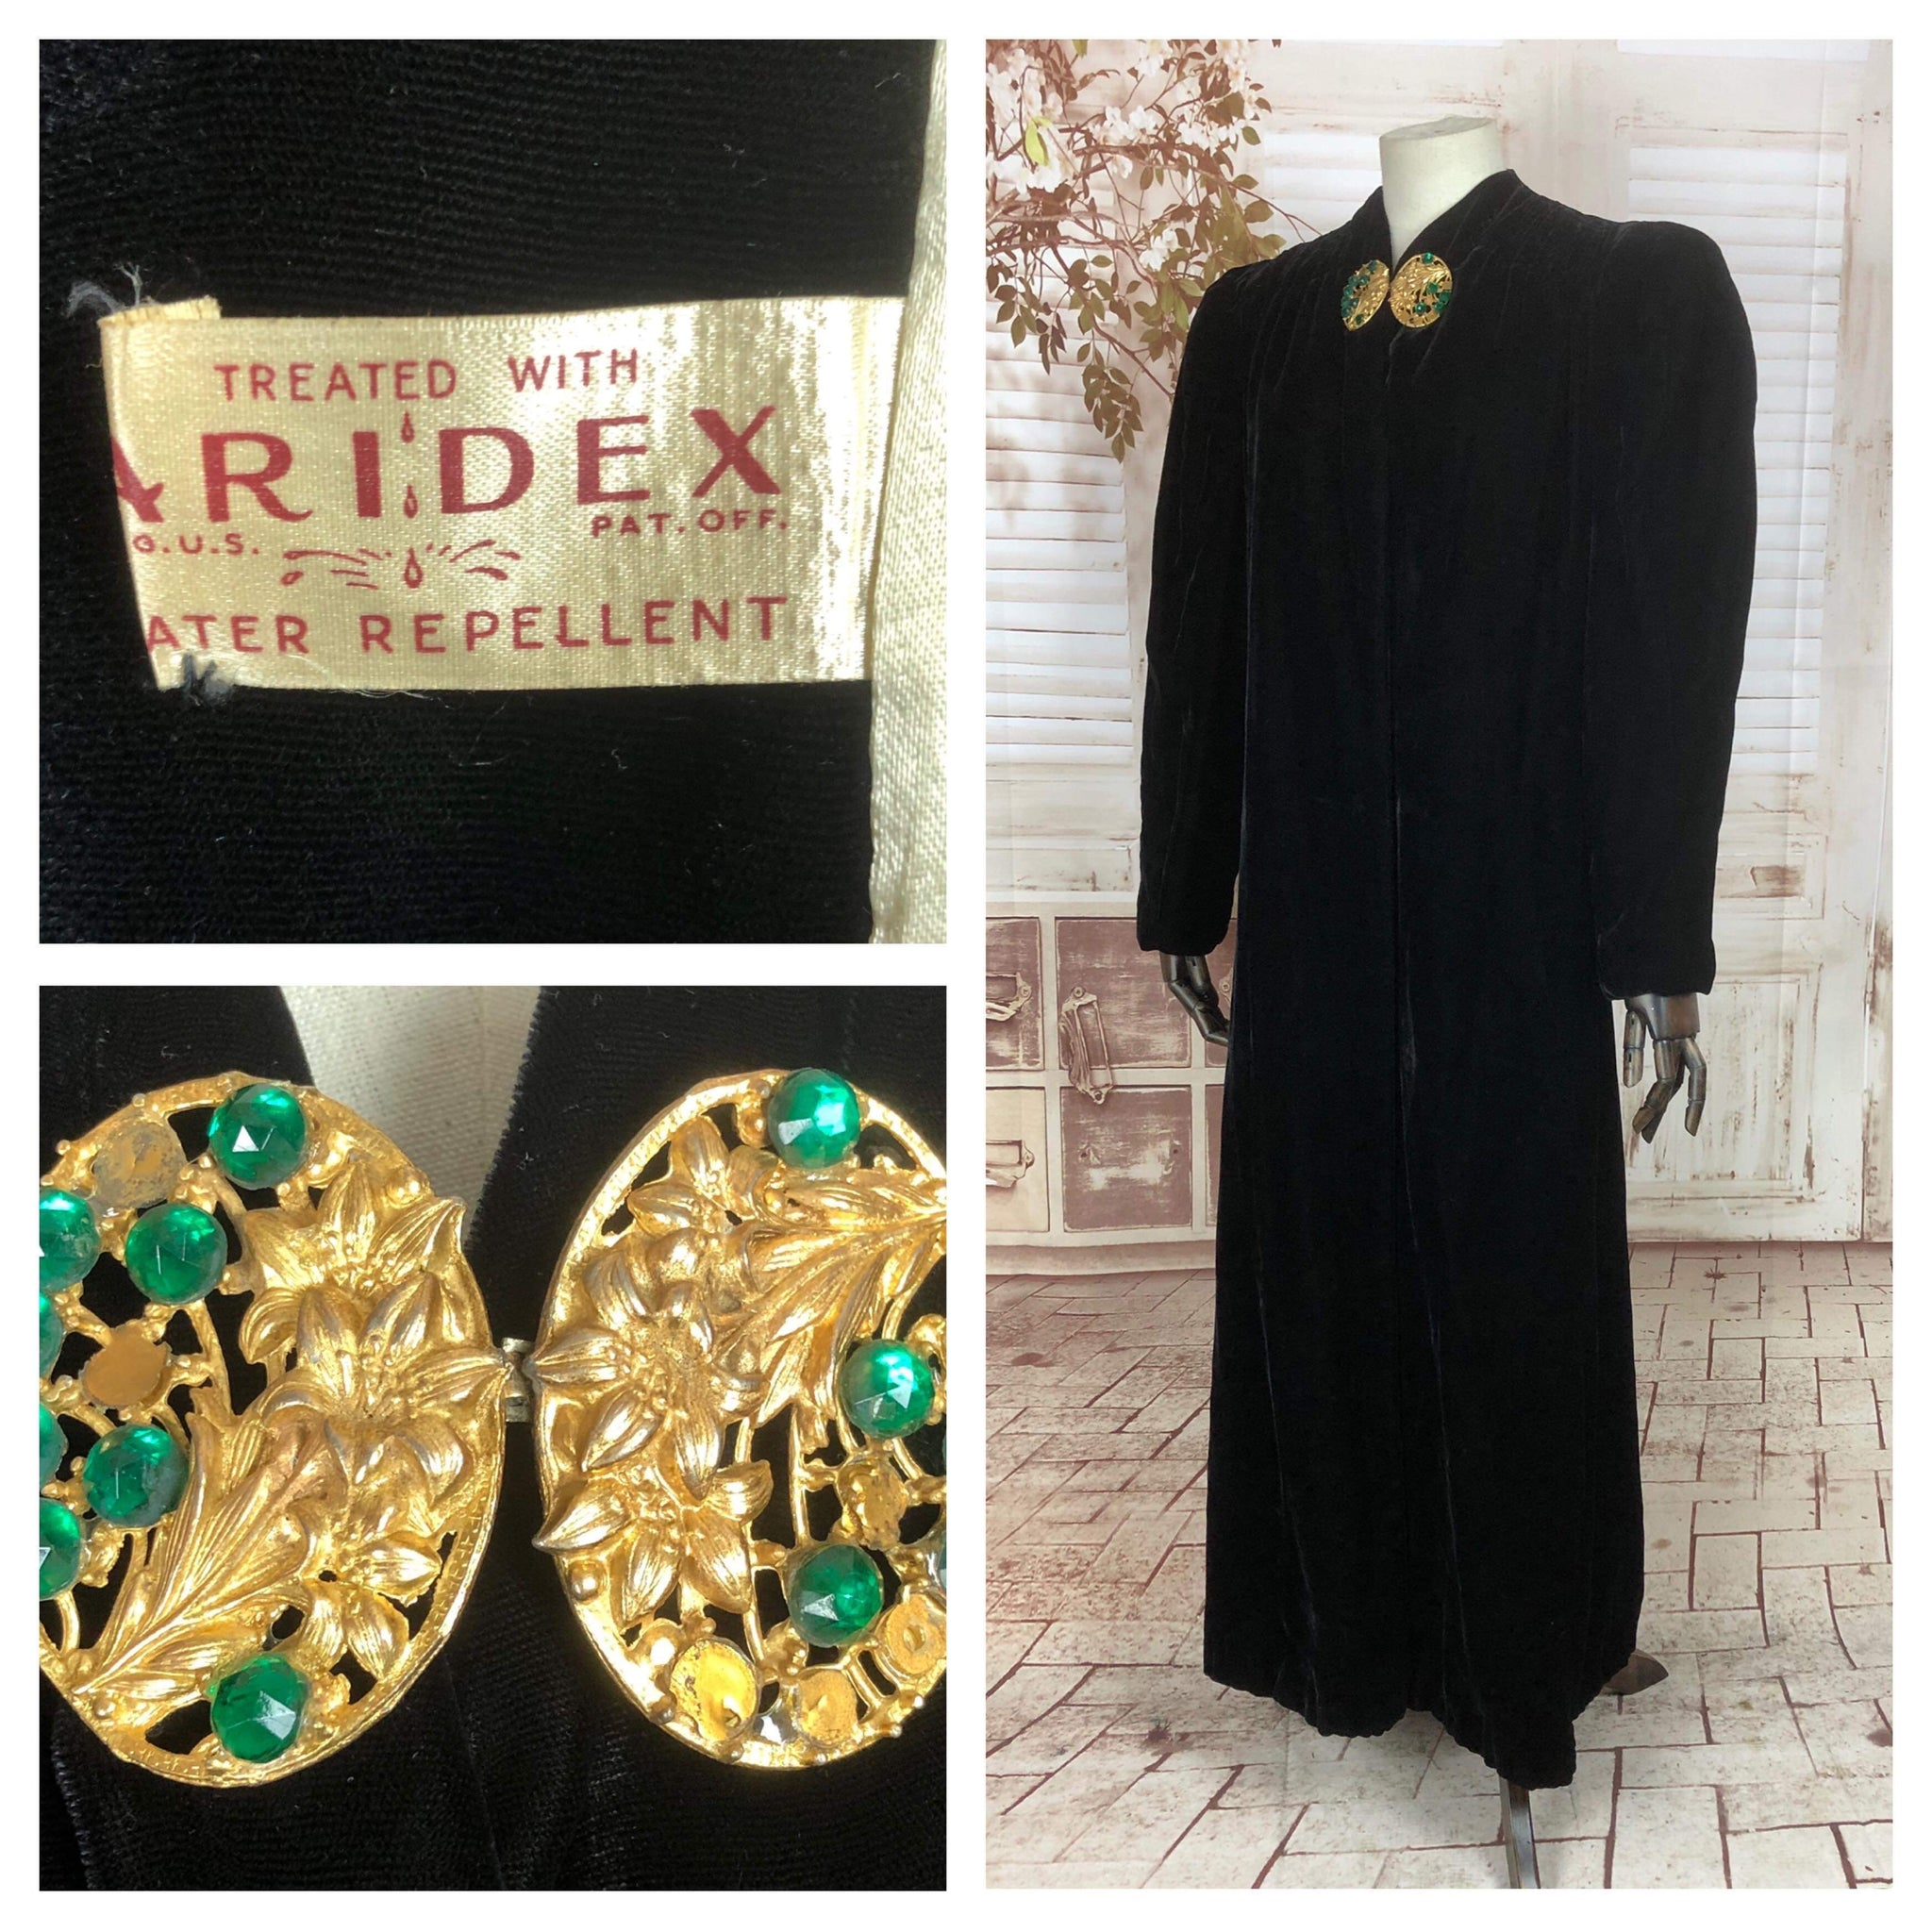 Original 1930s 30s Vintage Black Velvet Coat With Puff Shoulders And Gorgeous Gold Clasp